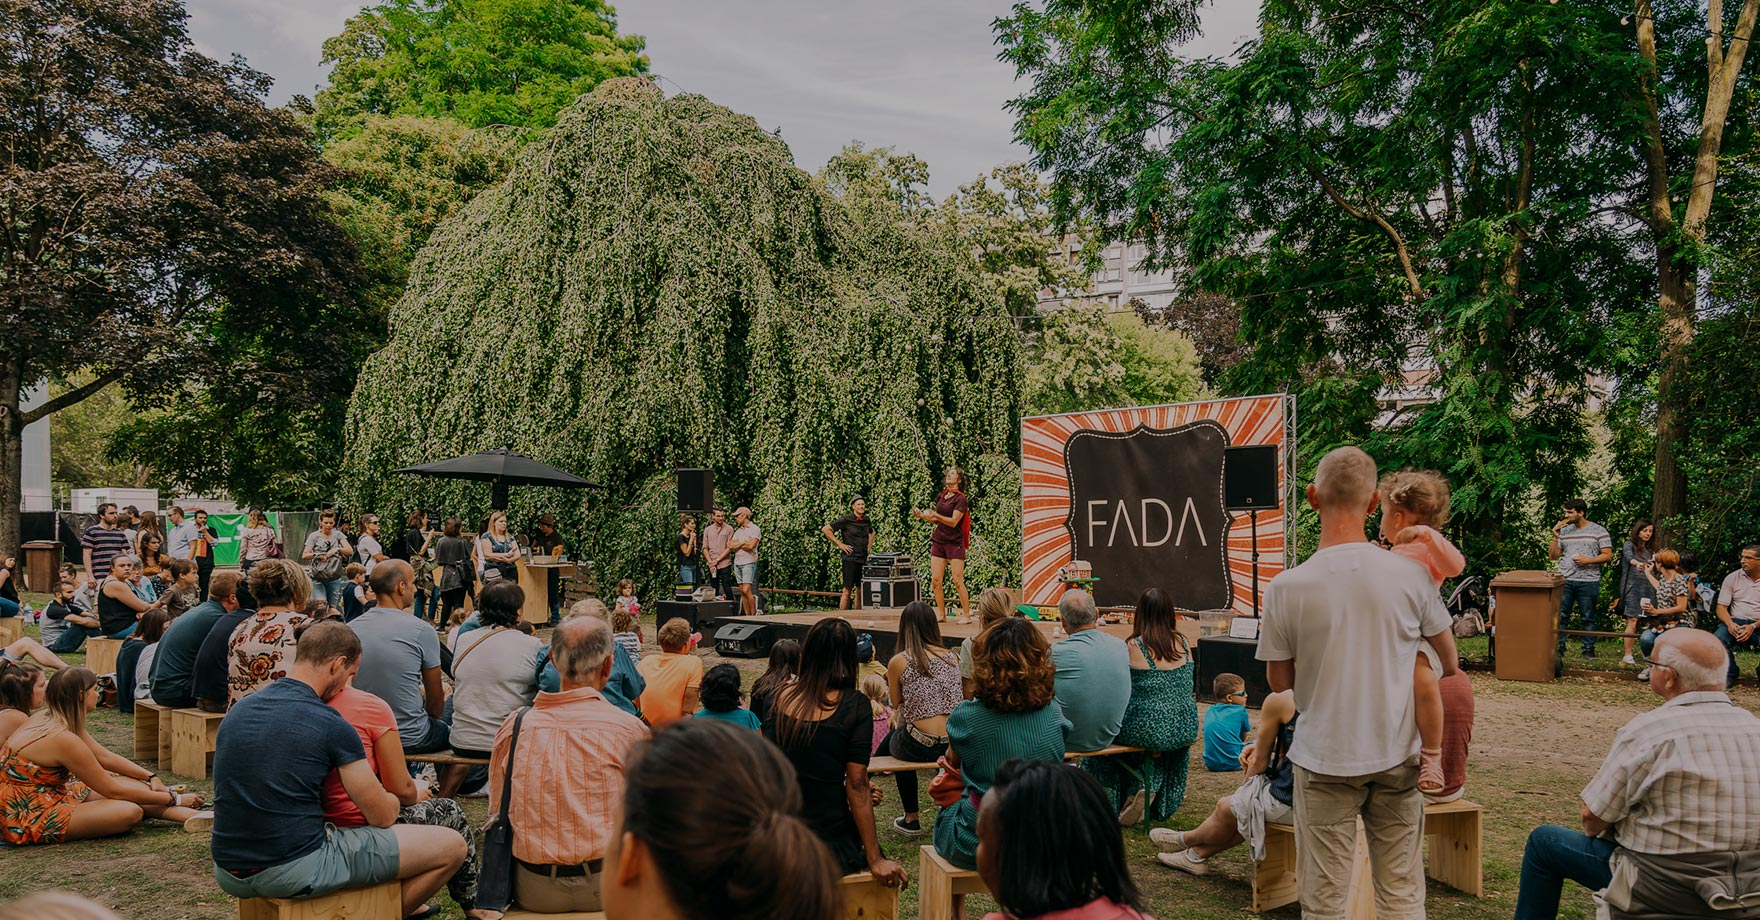 FADA | FOOD AND DRINK ART | 16-21 Juillet | Liège